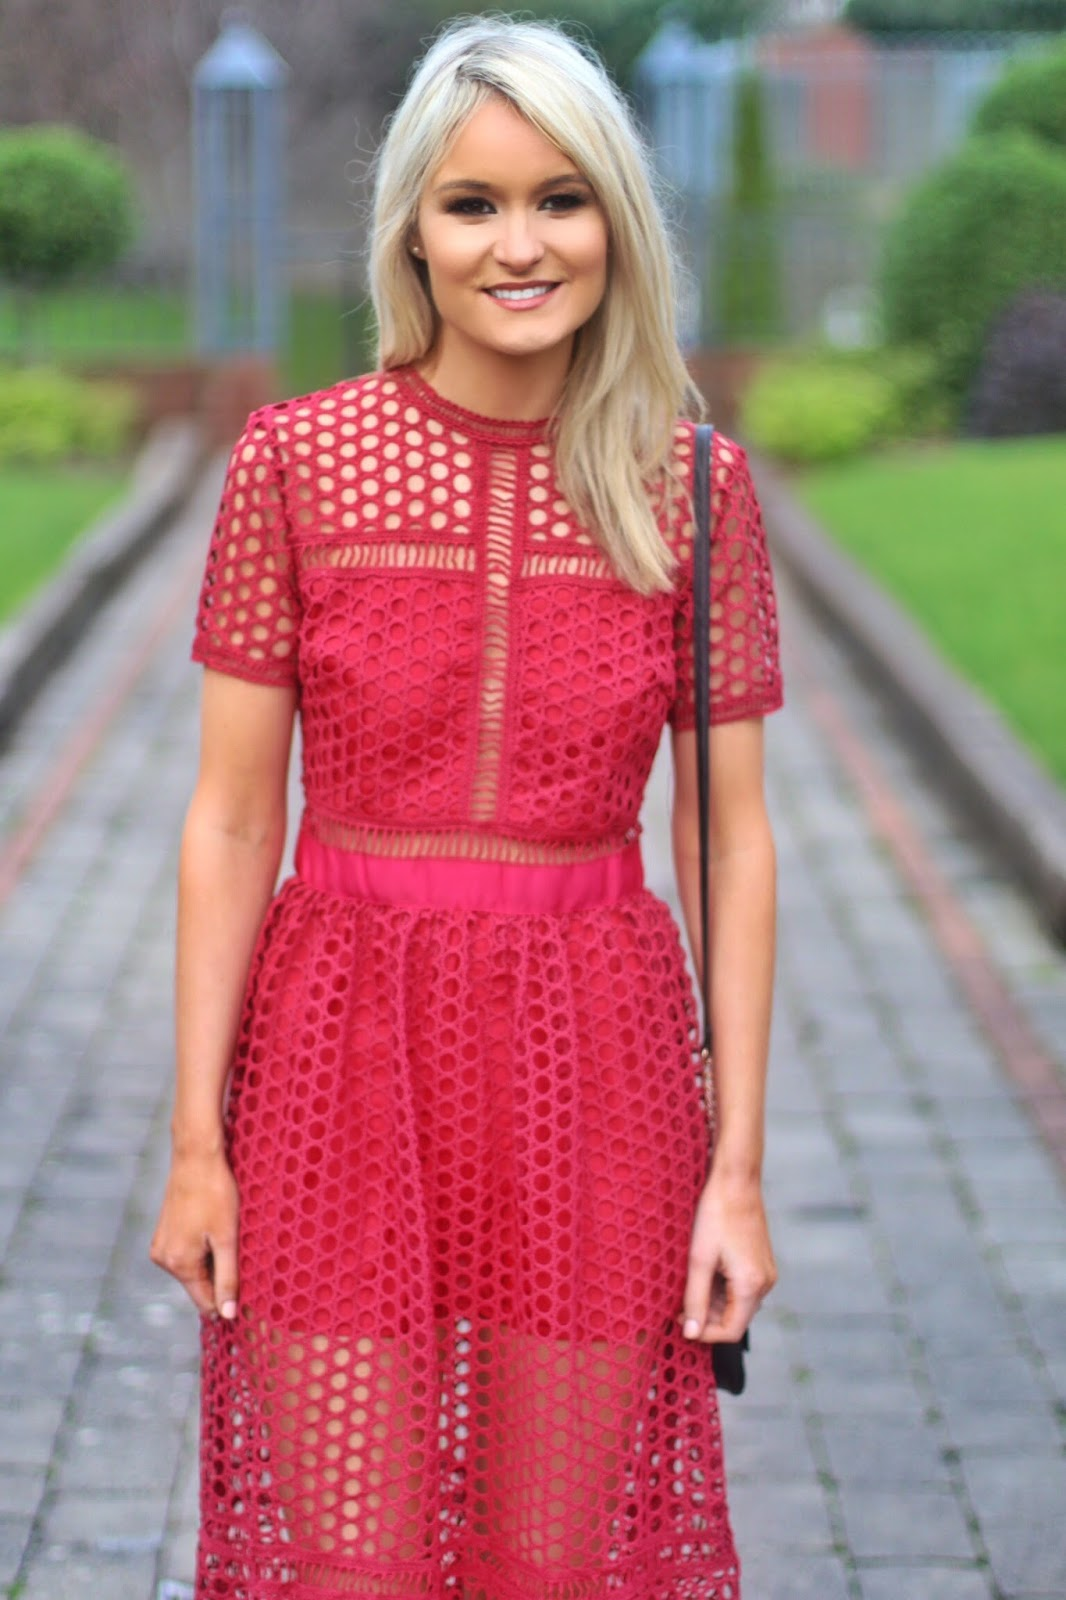 Red Self Portrait Inspired Dress Shein You Can Similar Here Black Sandals